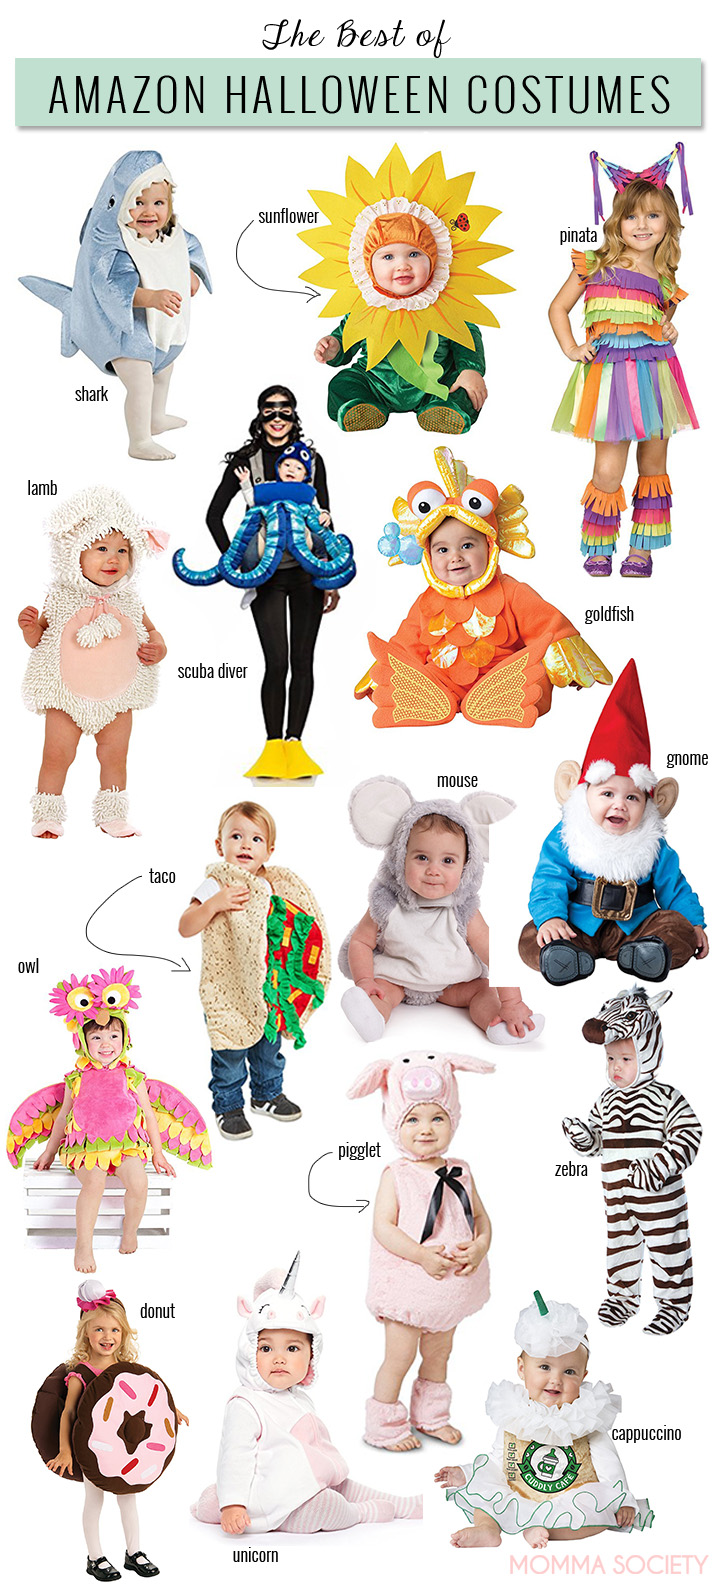 Best Halloween Costumes on Amazon | Toddler & Baby Halloween costumes | Costume Ideas | Halloween Costumes Infant | Halloween Costumes Family